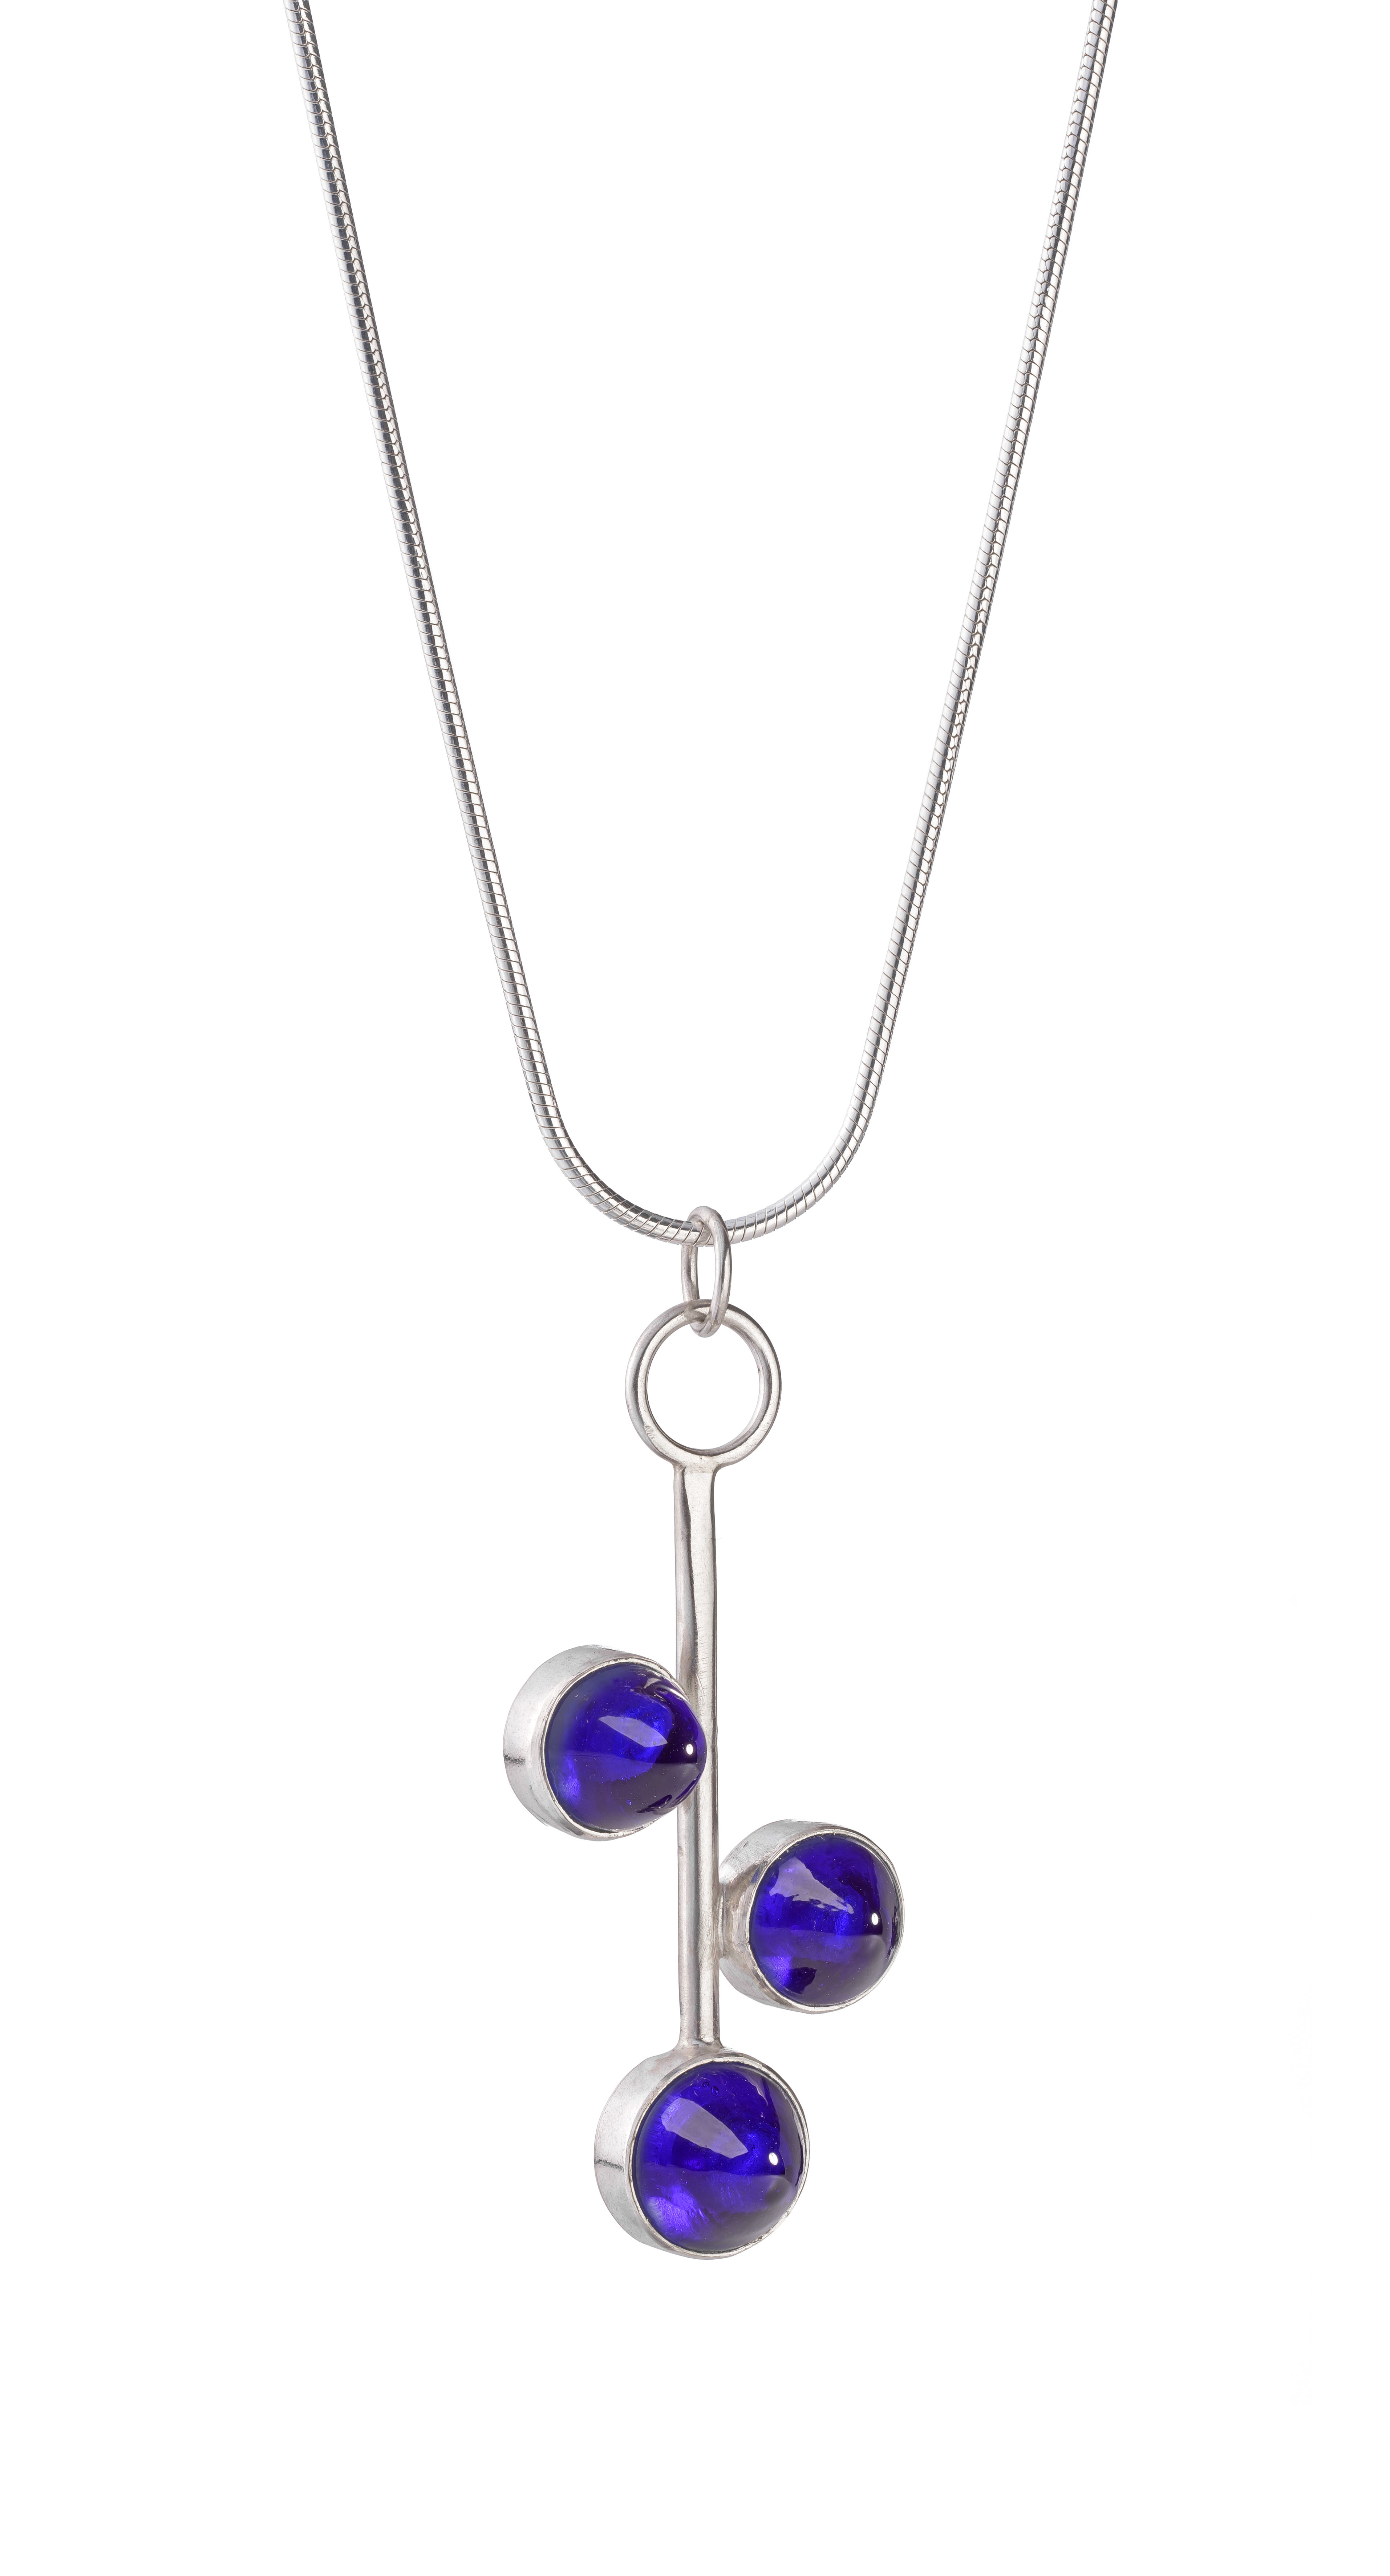 Cobalt blue Glass Pendant